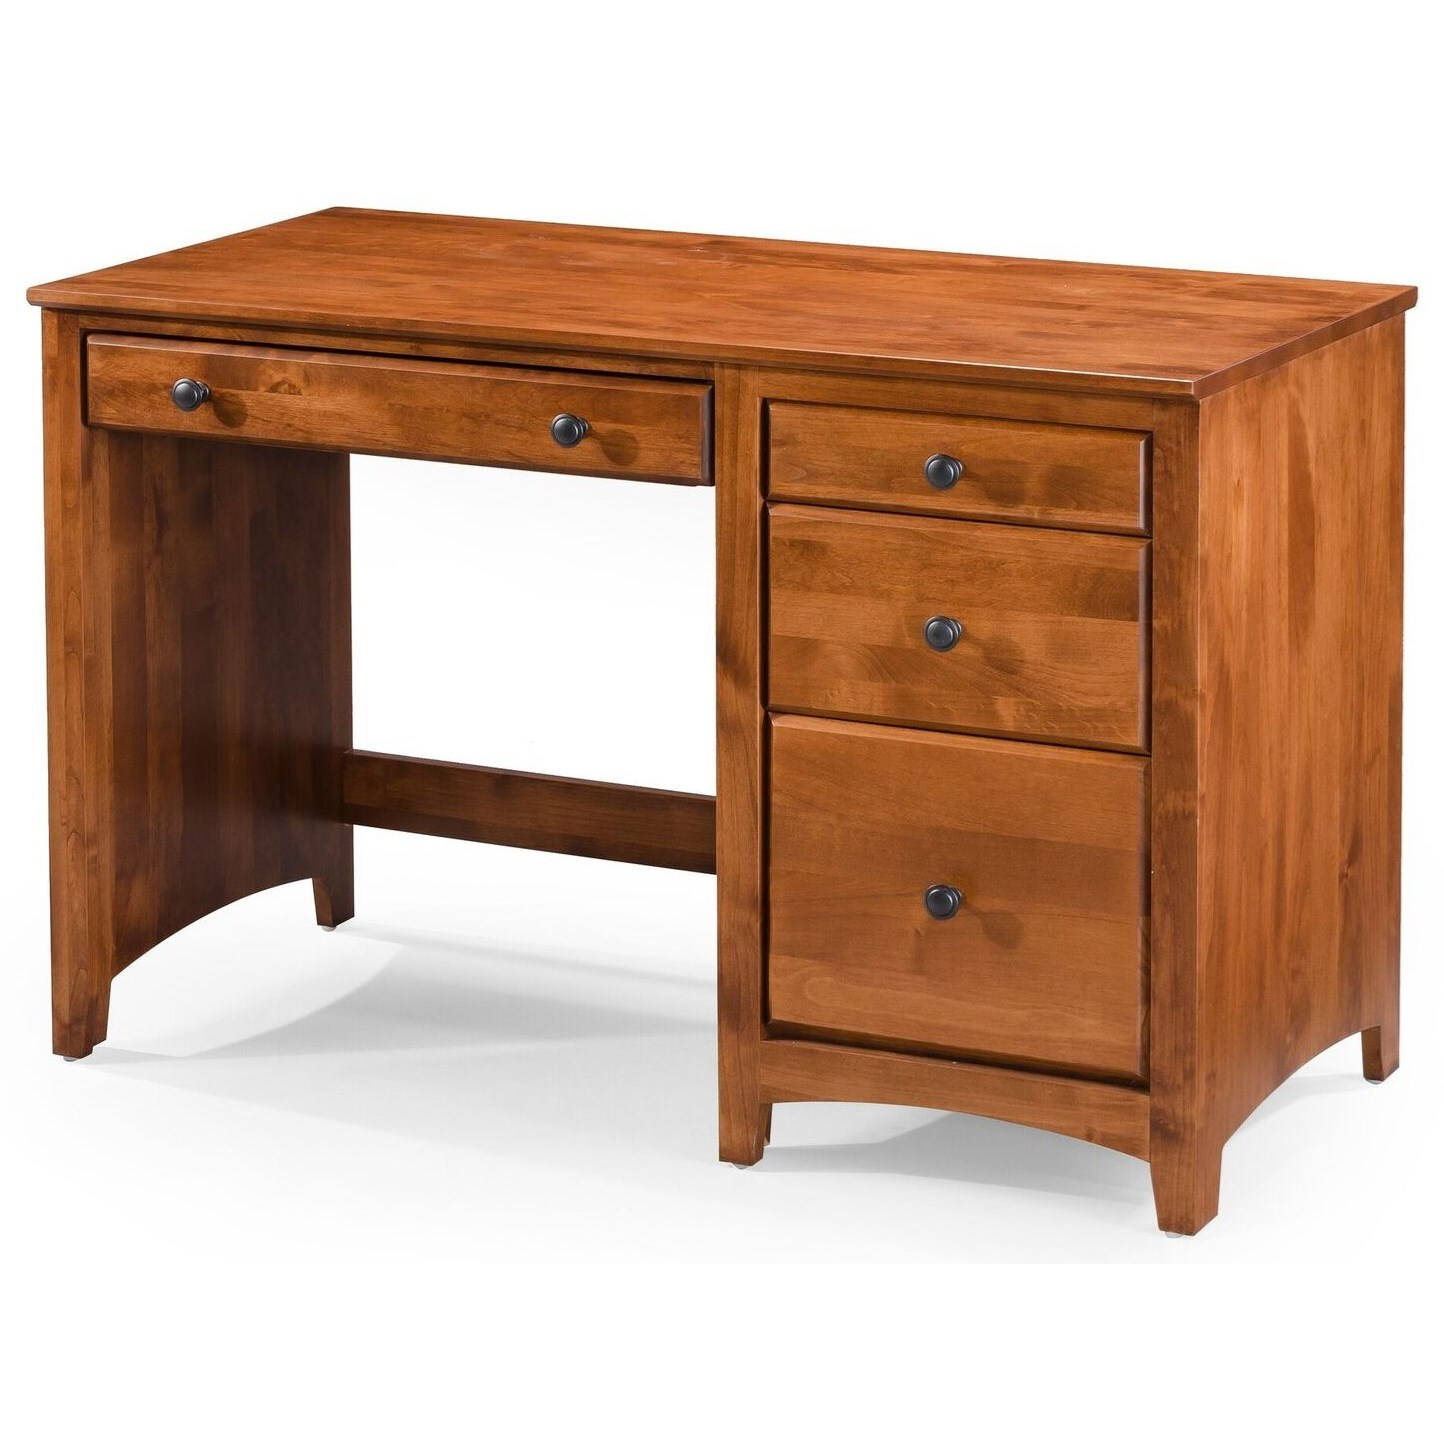 Modular Home Office 4 Drawer Desk  at Williams & Kay